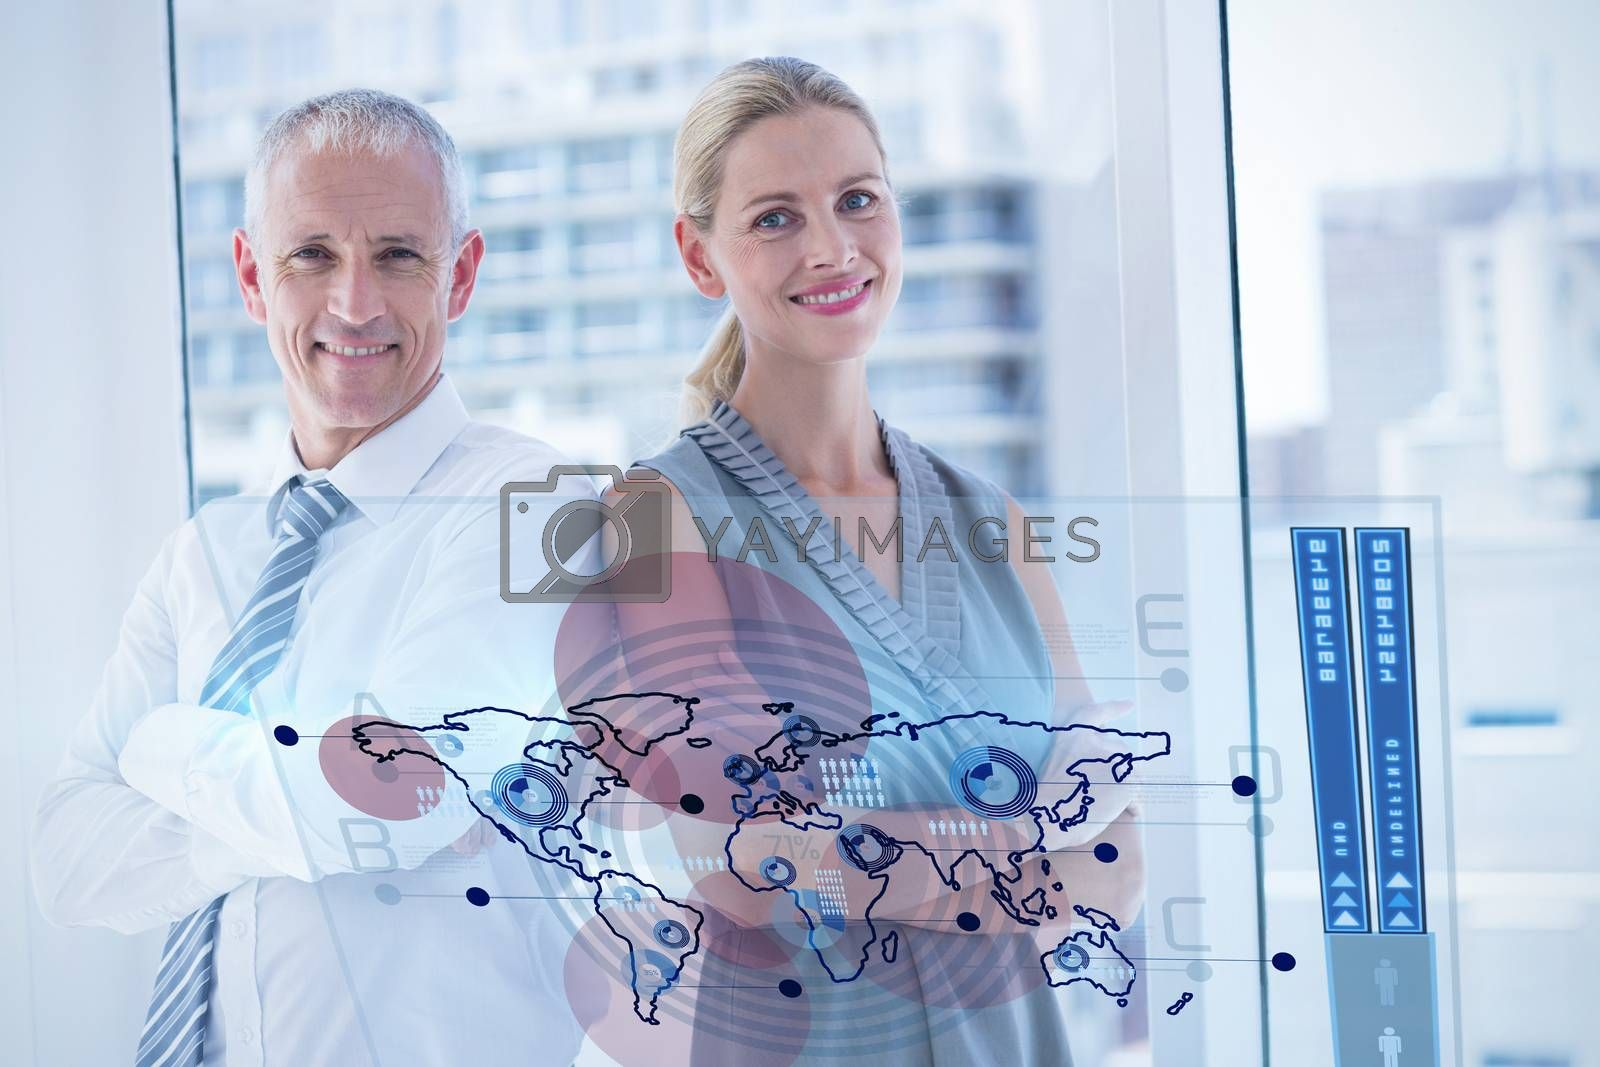 Royalty free image of Composite image of global business interface by Wavebreakmedia